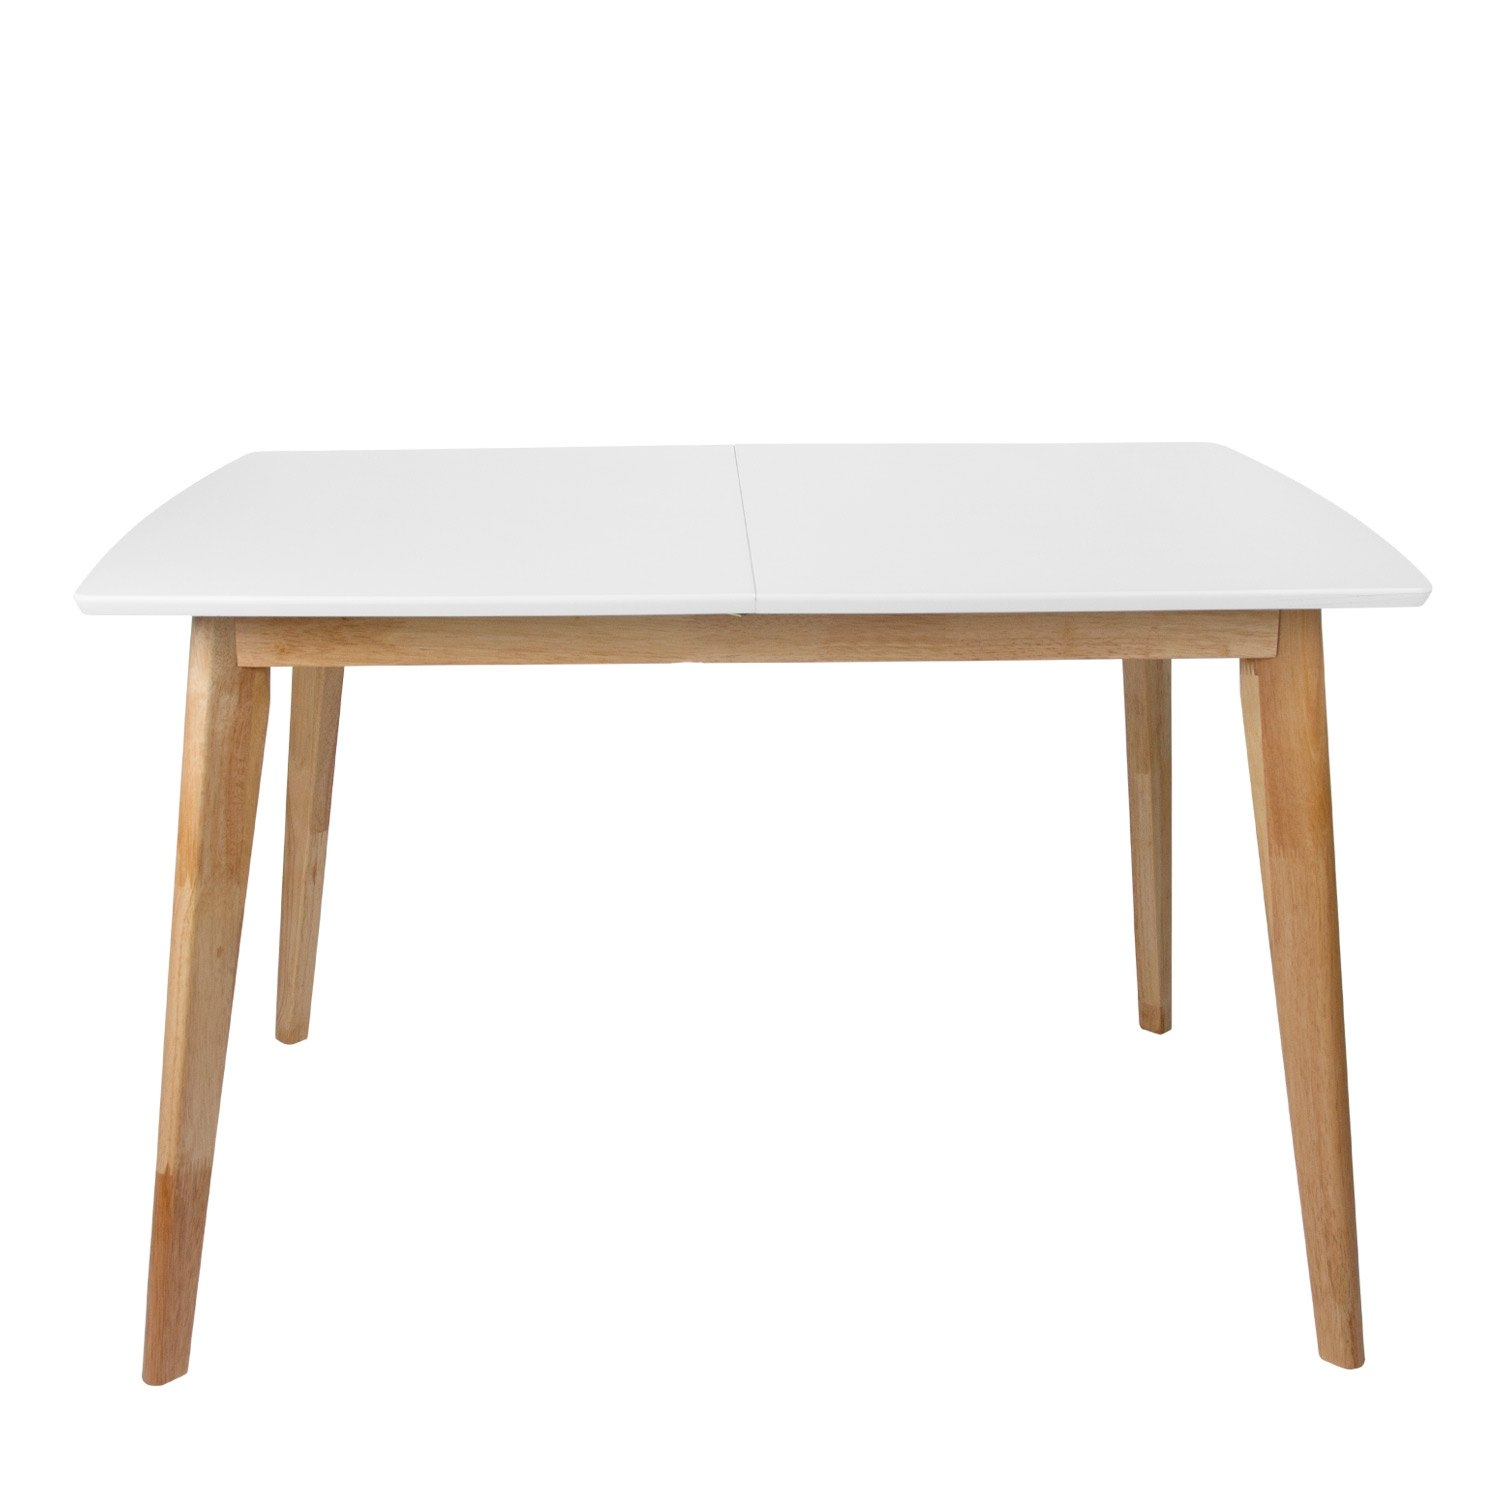 Comprar Sillas De Comedor Baratas Table Nordique Extensible Table Blanche En Bois Extensible